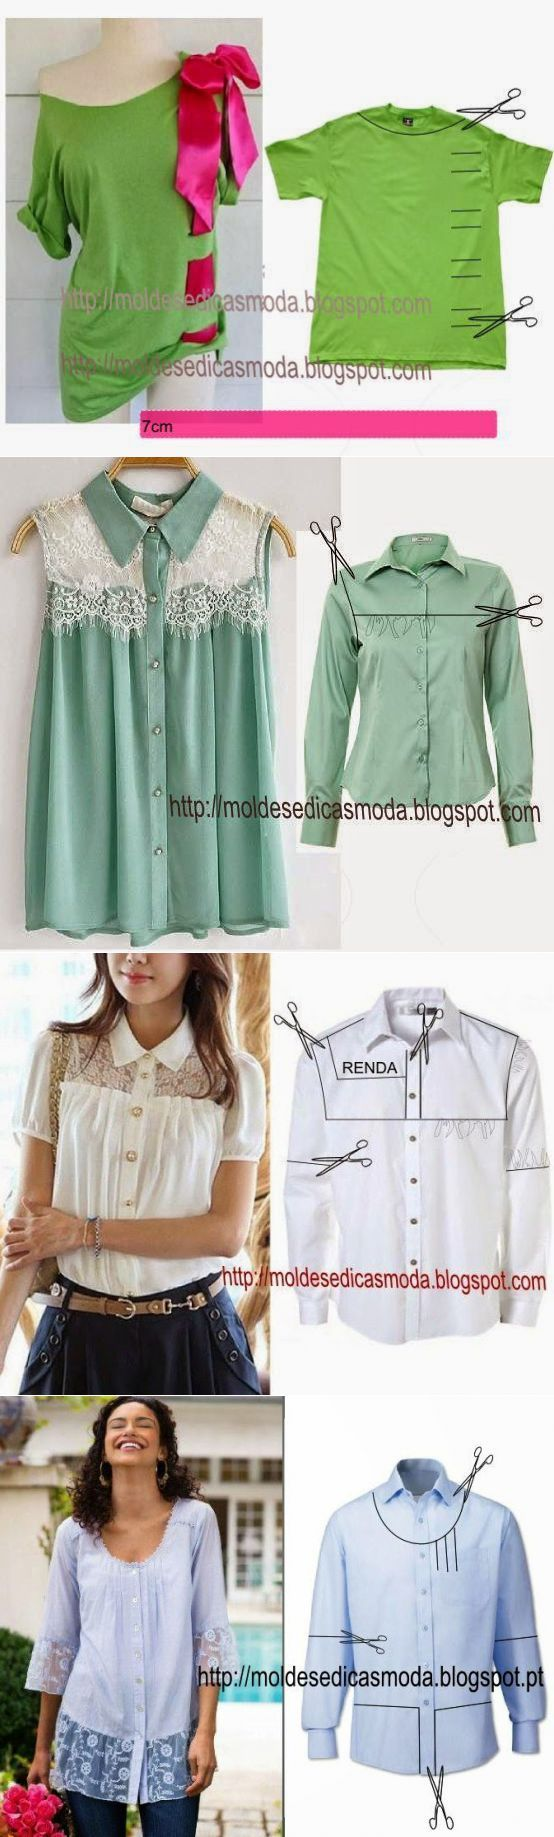 Upcycled mens shirts into womens